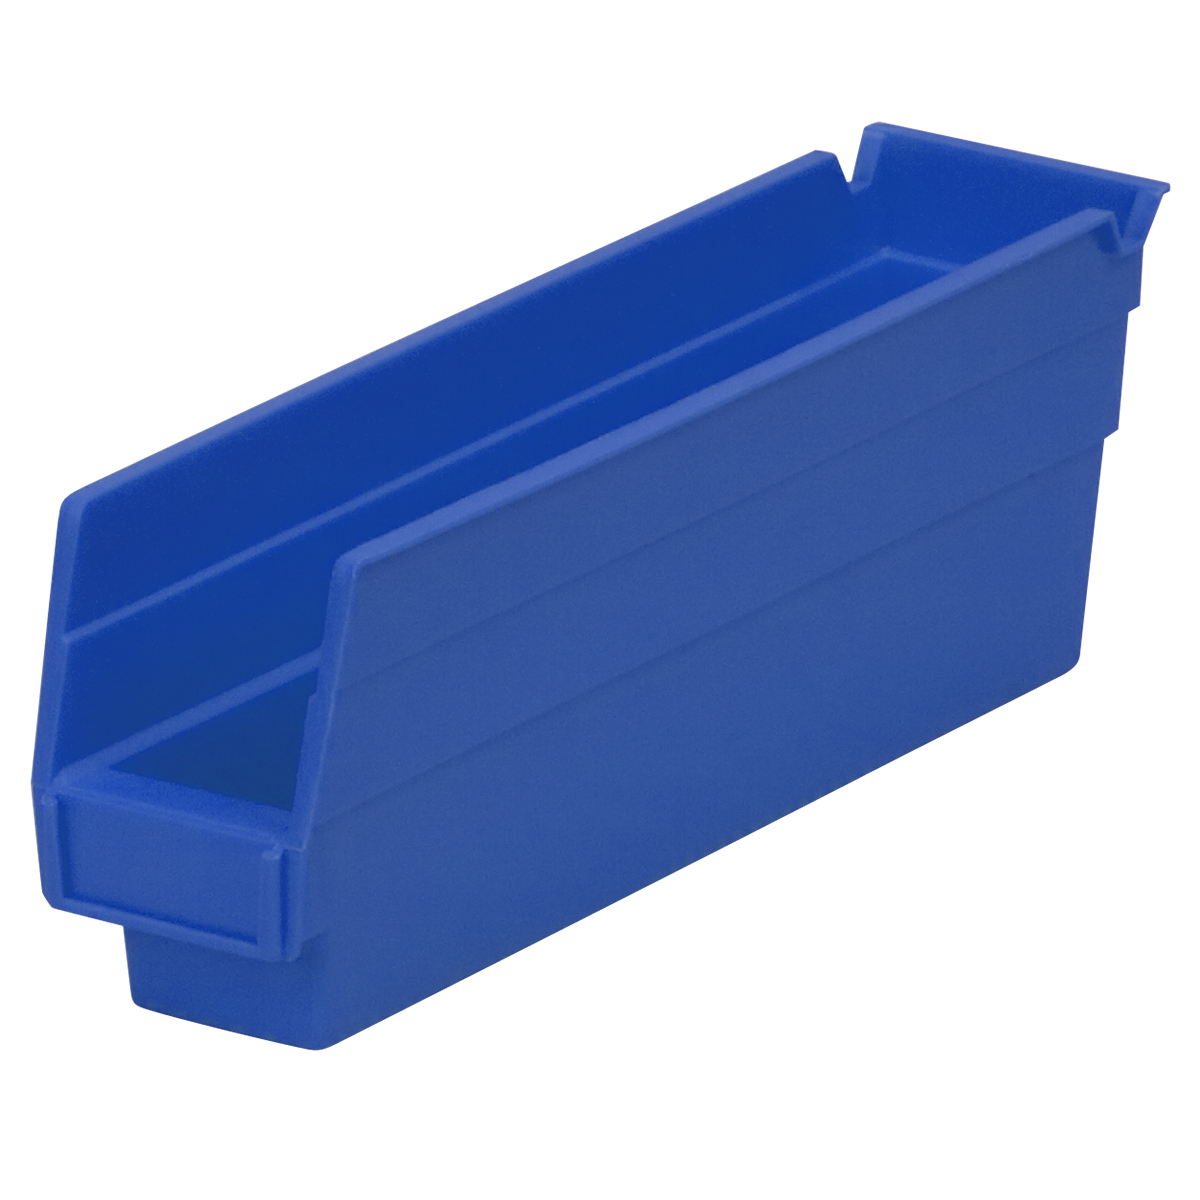 Shelf Bin 11-5/8 x 2-3/4 x 4, Blue (30110BLUE).  This item sold in carton quantities of 24.